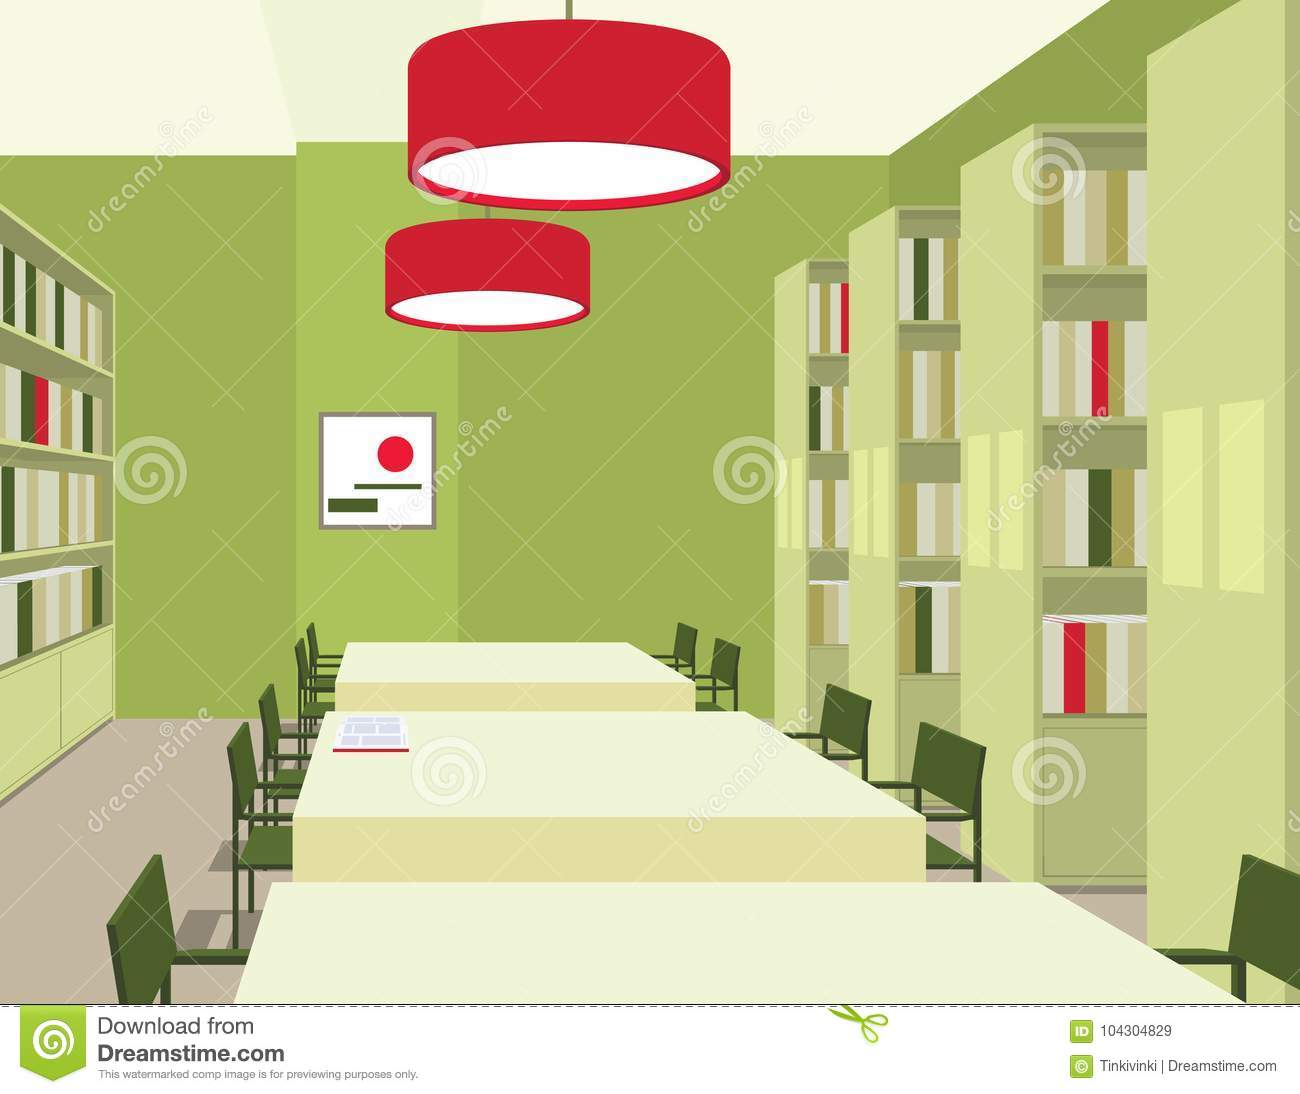 Library Interior With Tables Chairs Bookcases Lights Perspective View Empty Space